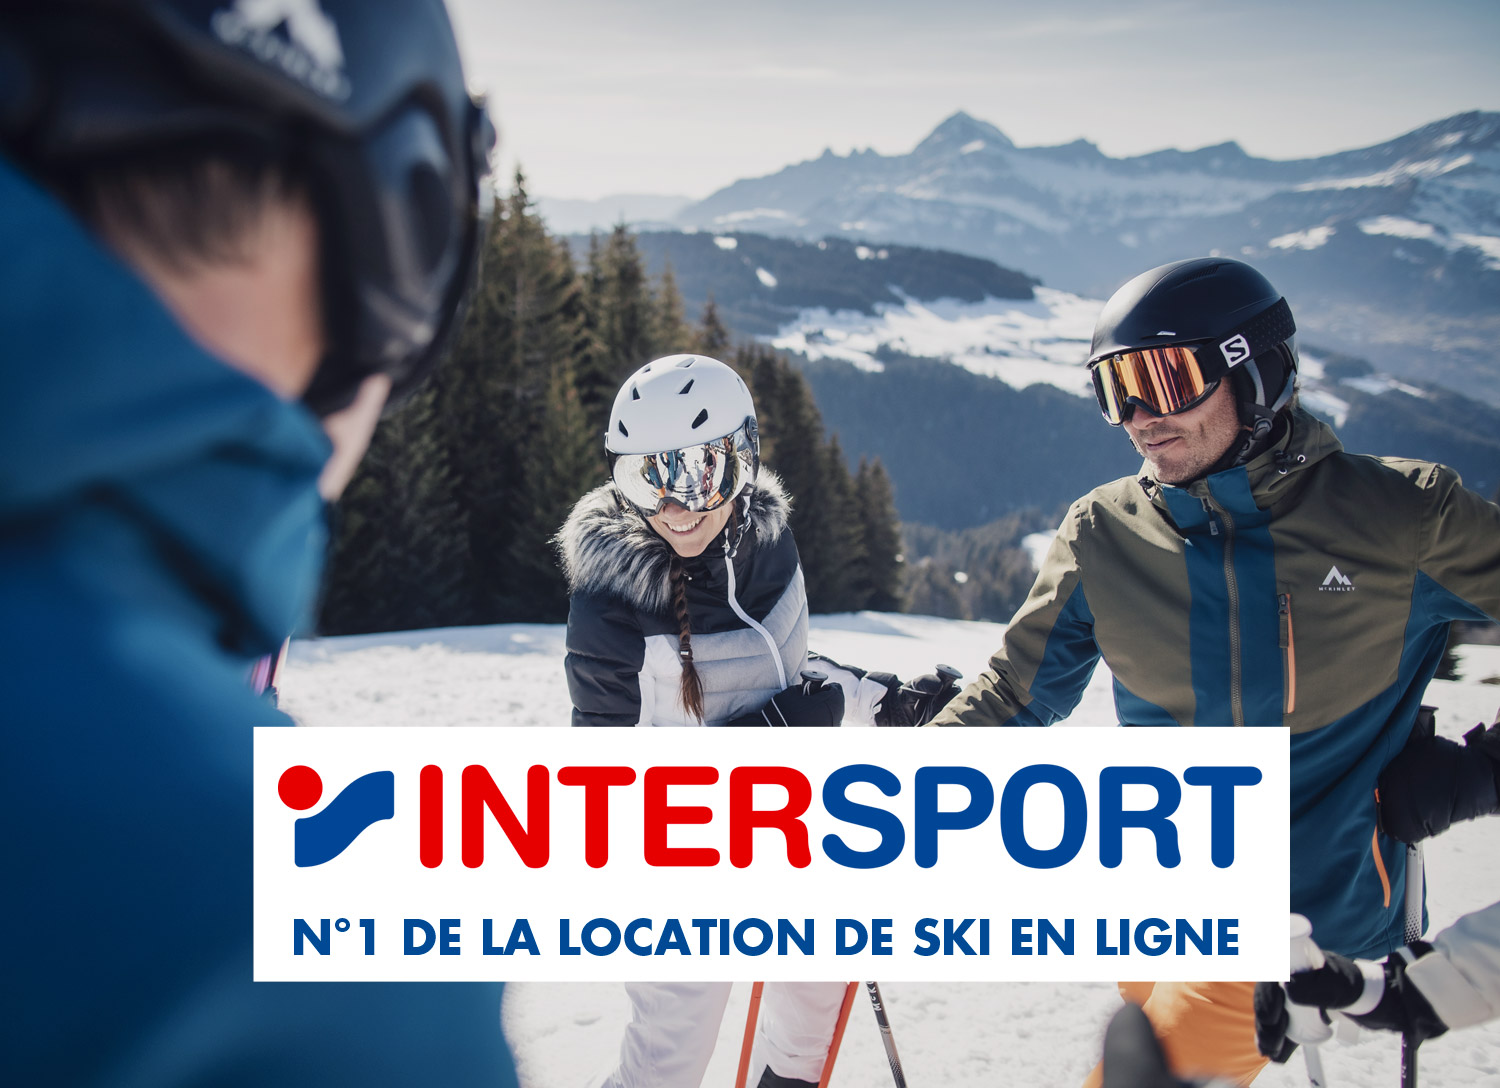 Intersport Centrale Magasin Rue Risoul Magasin Intersport gf7yb6